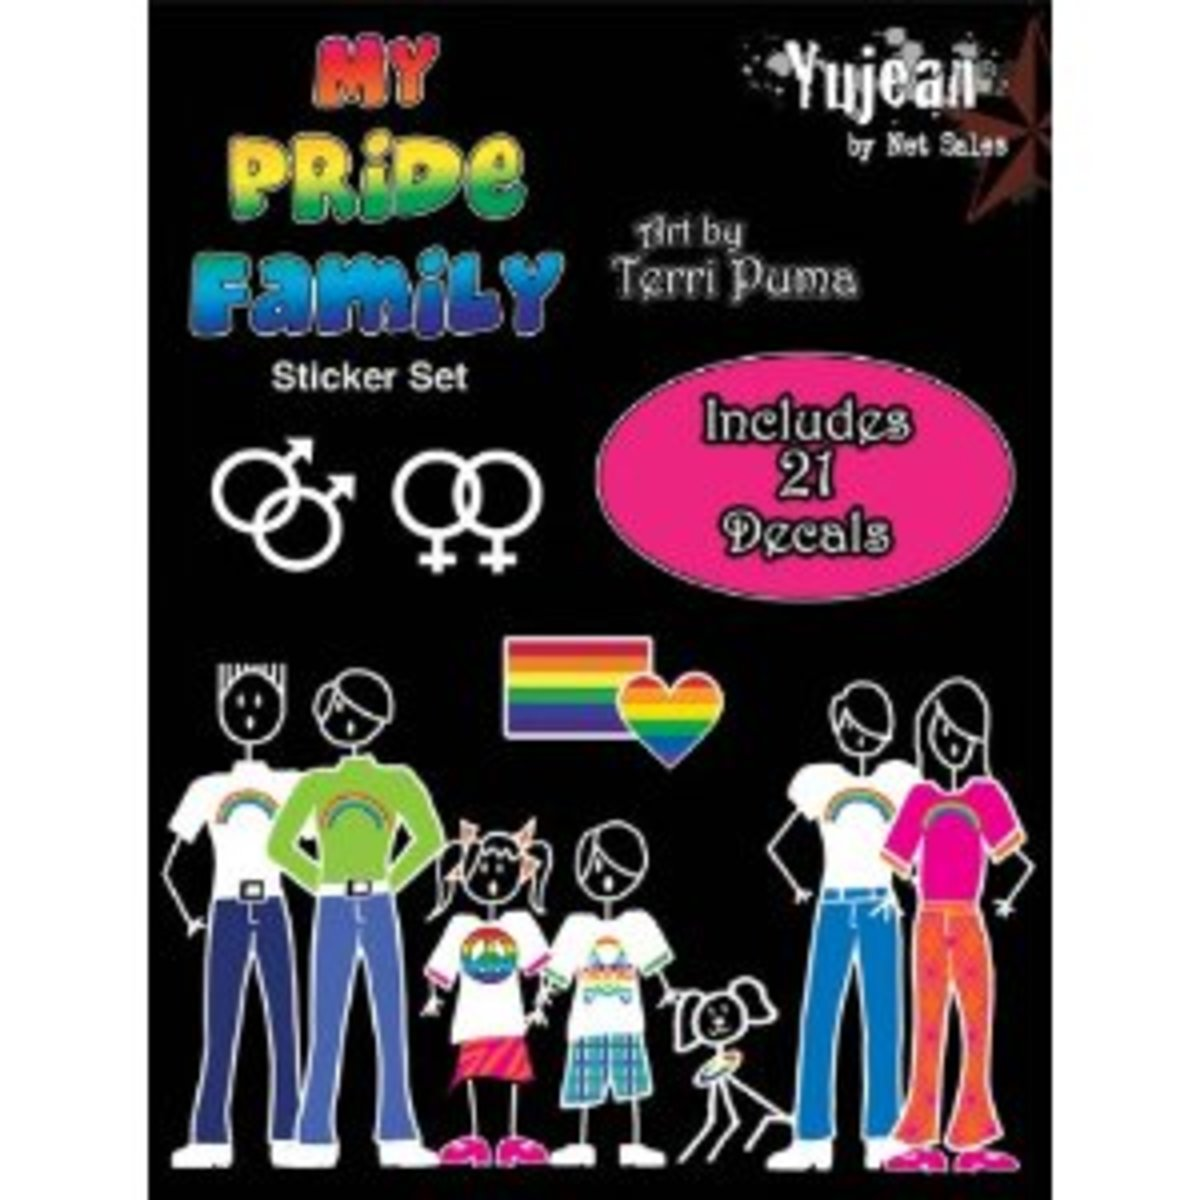 """""""My Pride Family Stickers Set""""  Weather-resistant, extra long-lasting. 6""""x 8"""" package size. Artist: Terri Puma"""